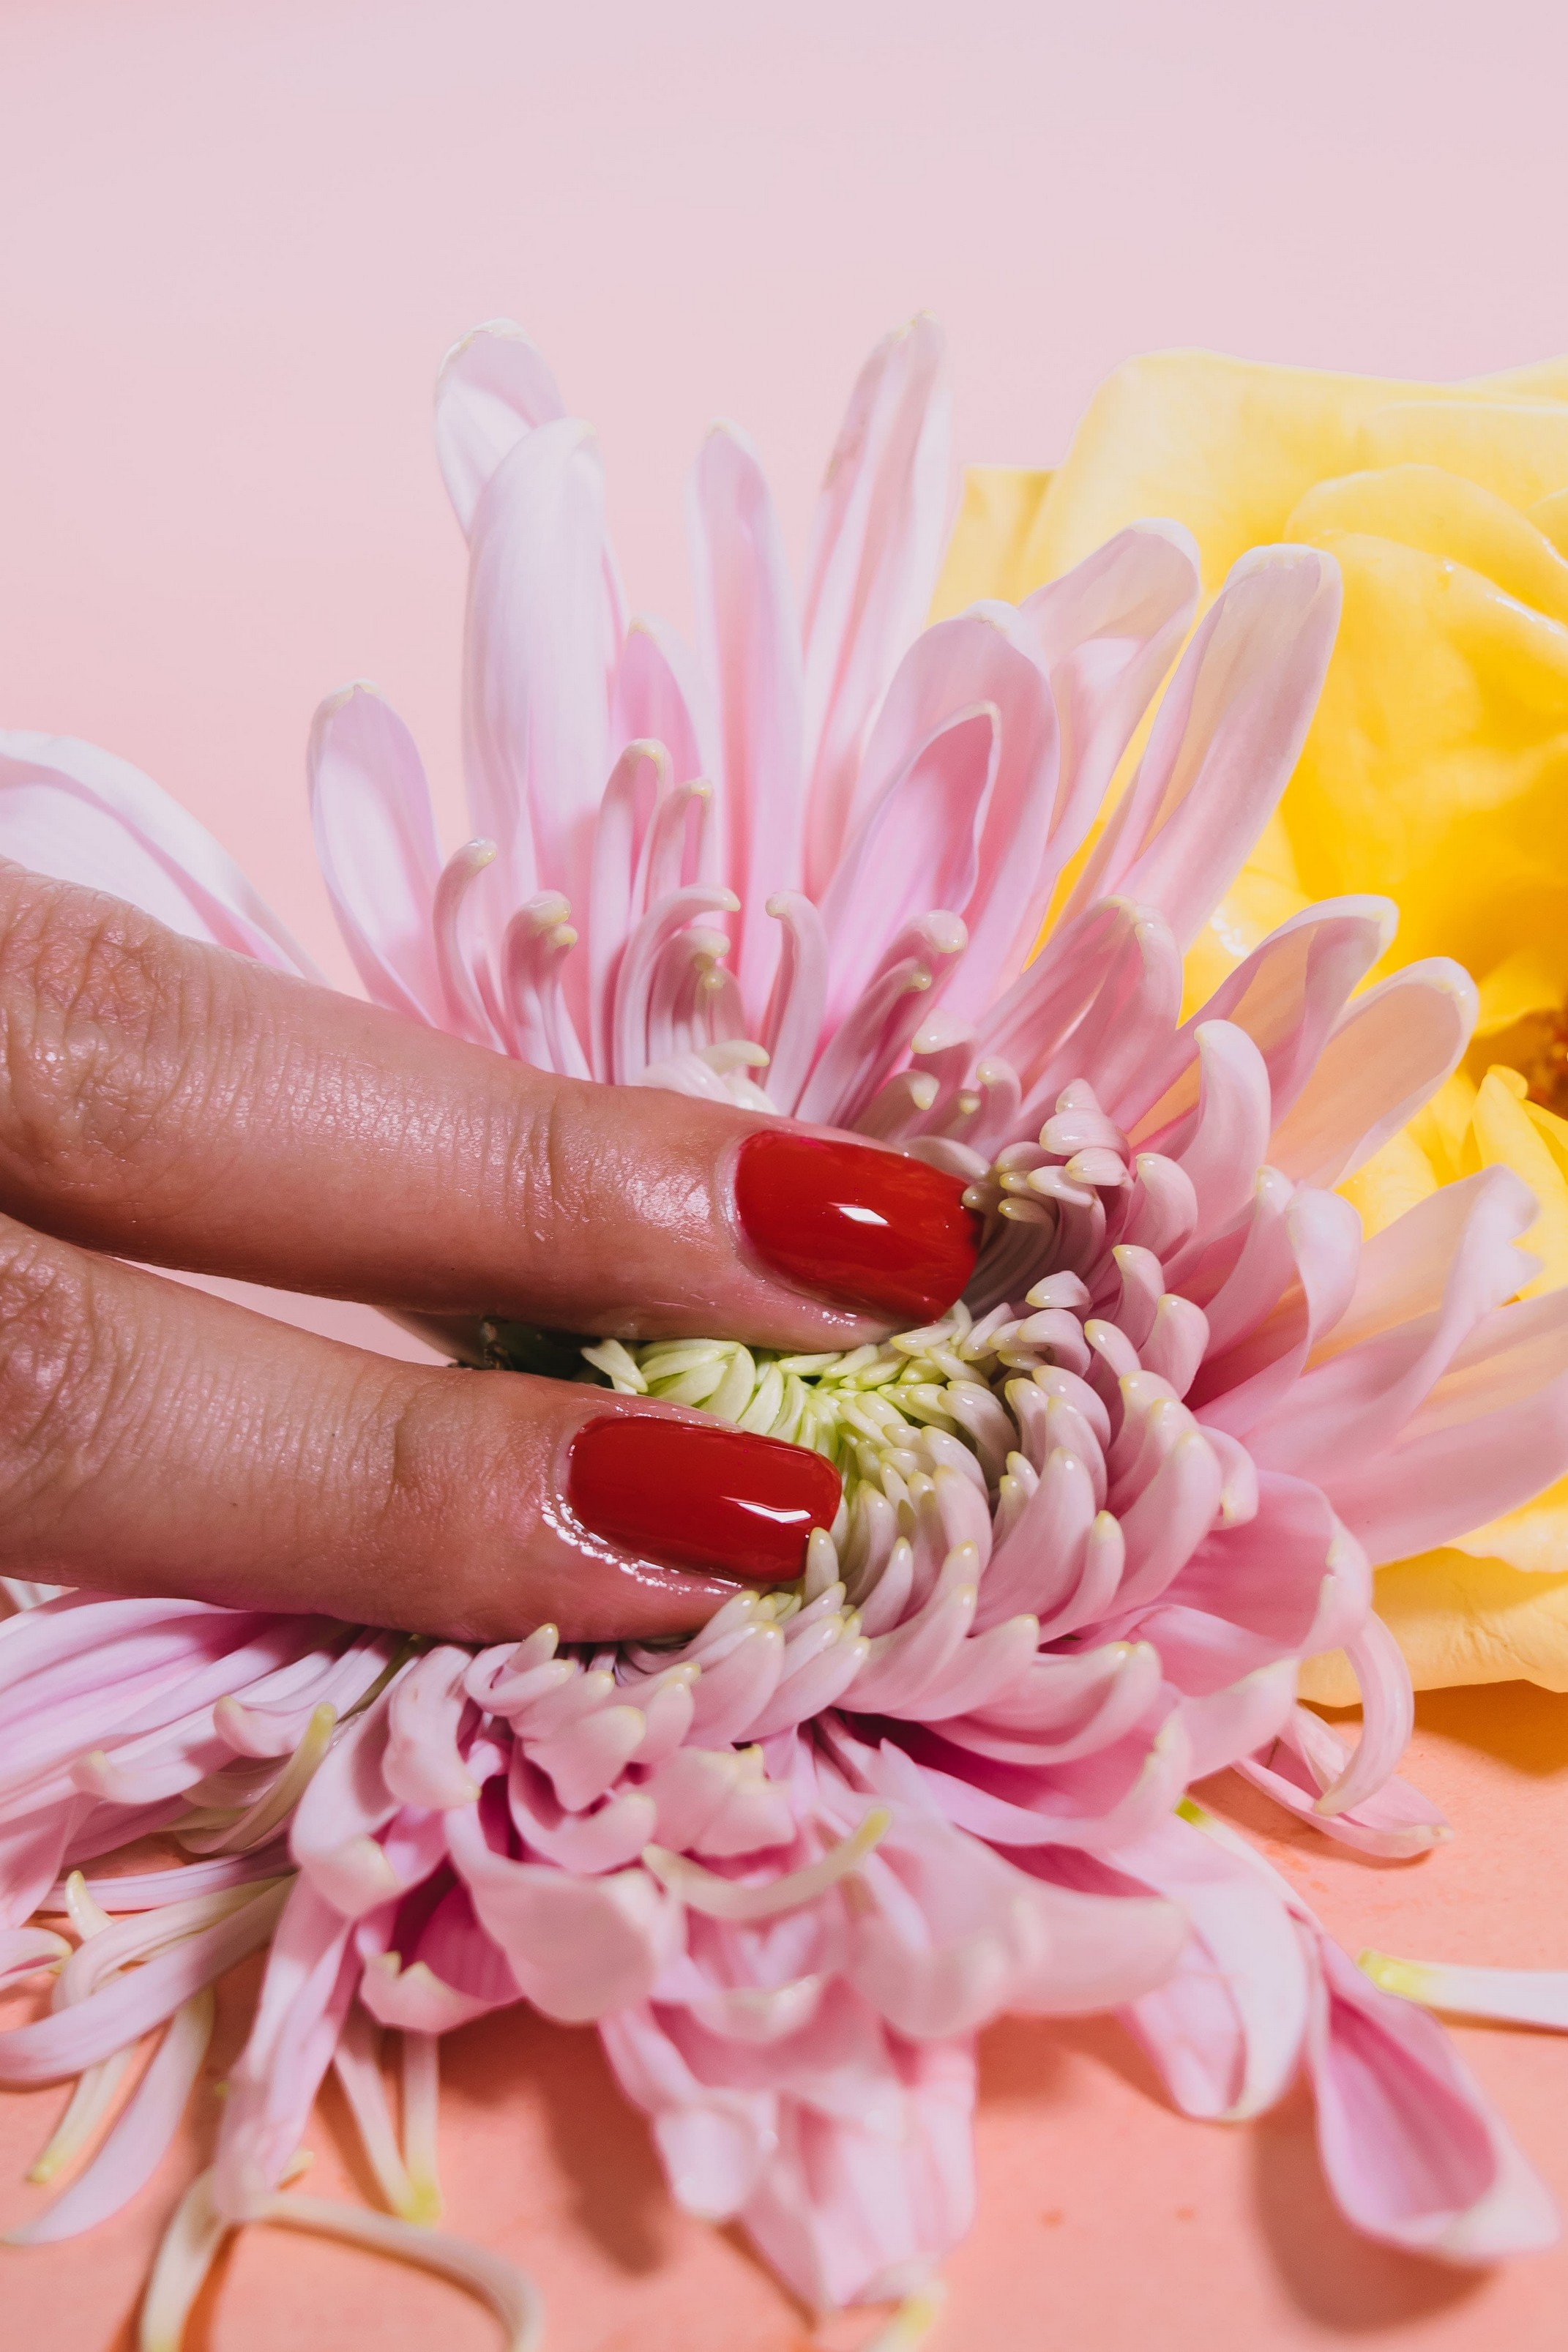 close up of red painted nails, possibly Water-Permeable, laying on a pillow of flower petals.